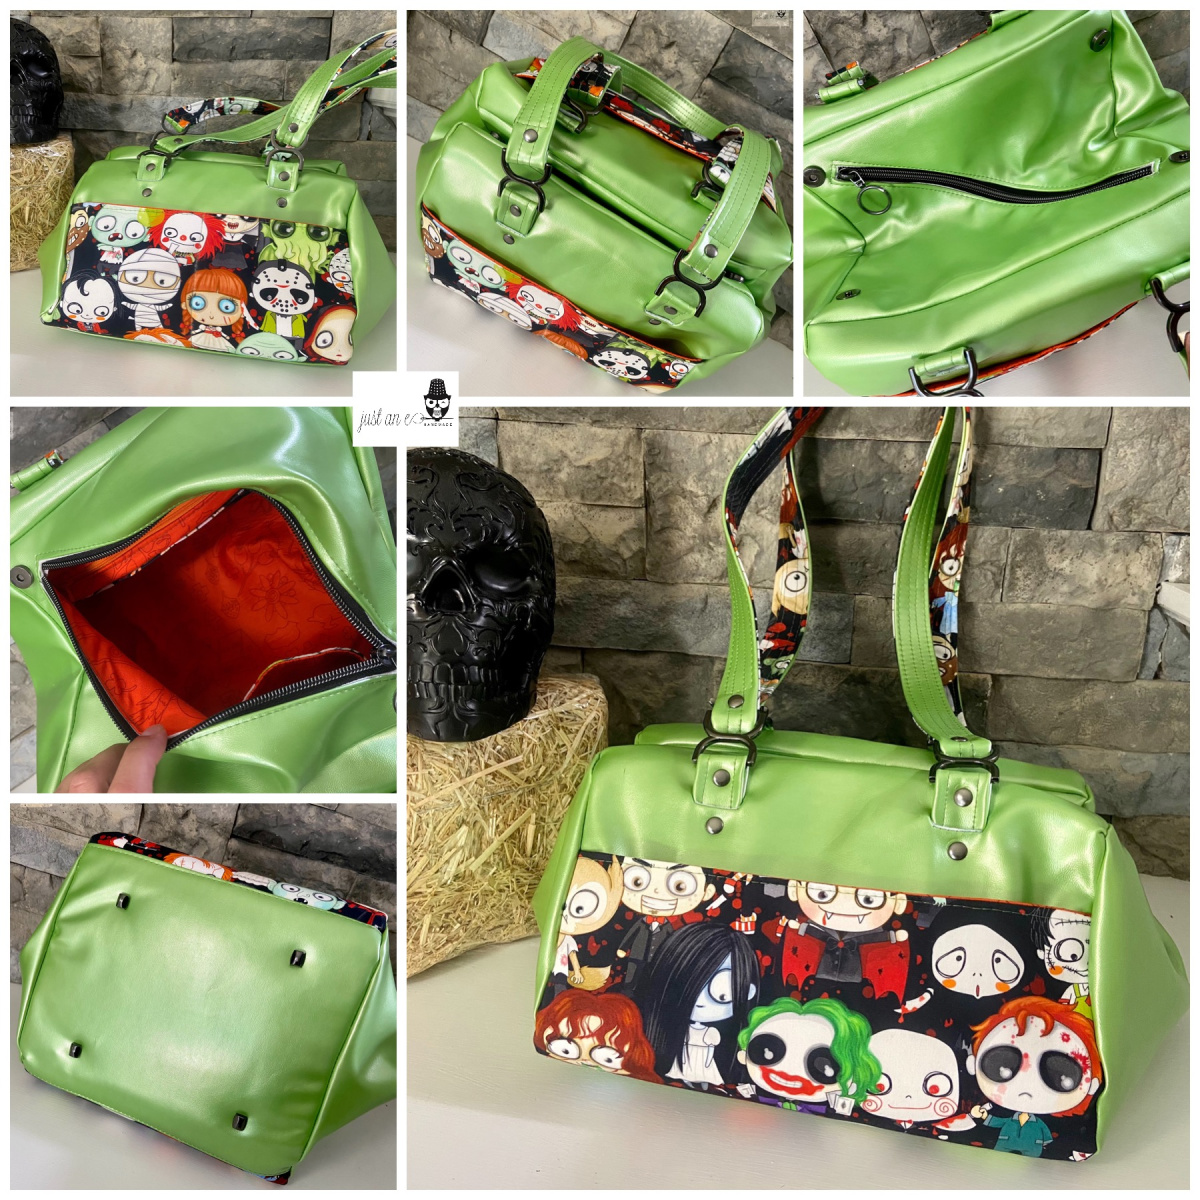 The small Super Nova Satchel made by Abbe Coury from Just An E Sewing